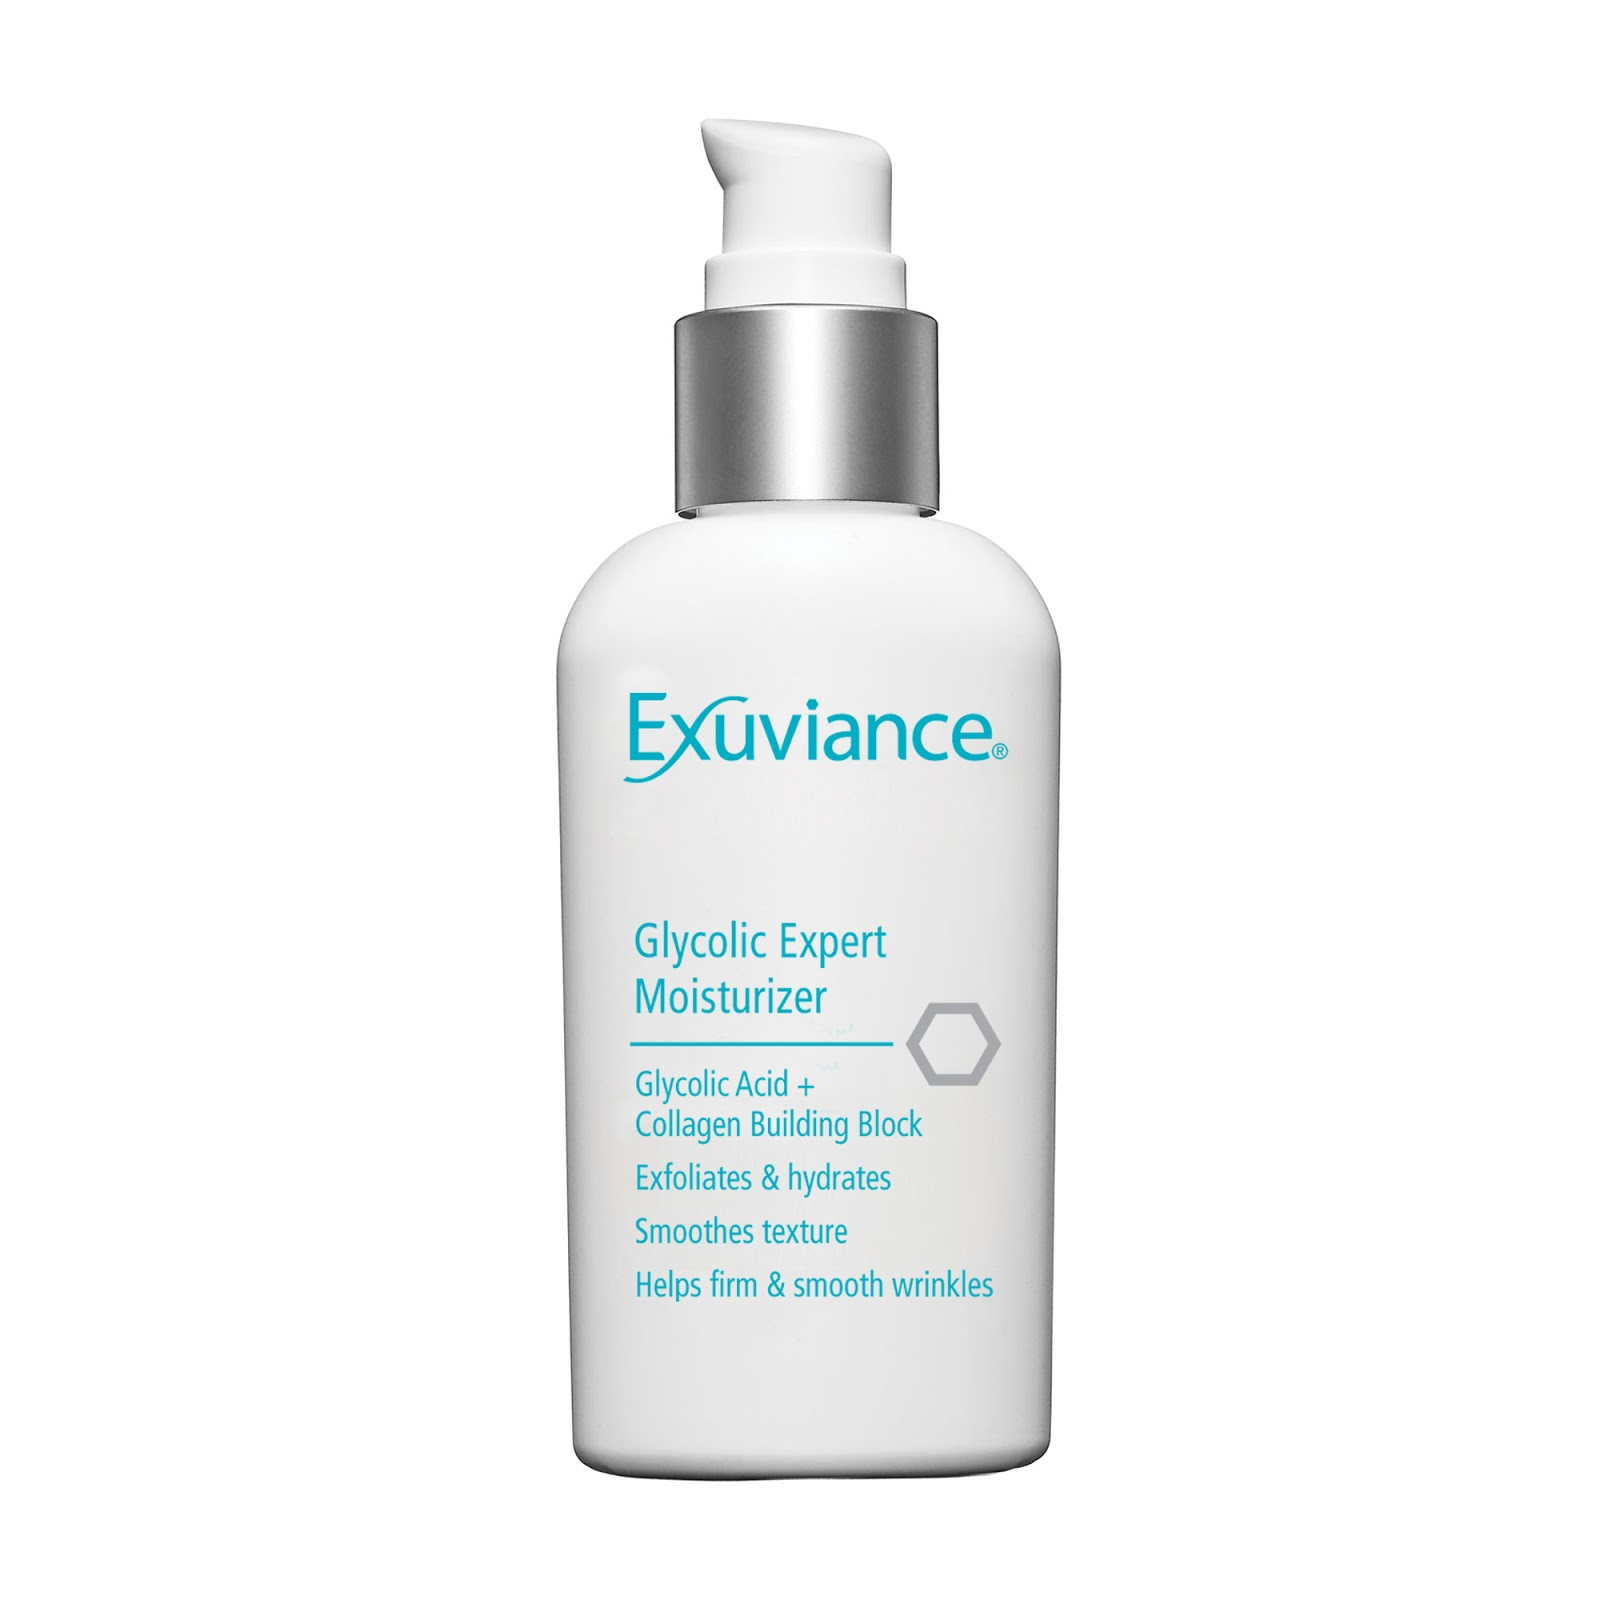 Review Exuviance Glycolic Expert Moisturizer Glycolicacid Soft Case Emerald Black Berry Bb Aurora Jacket Smooth Touch Dove Was Created By Drs Van Scott And Yu They Were Widely Regarded Leaders In The Field Of Cosmetic Dermatology Discovered Anti Aging